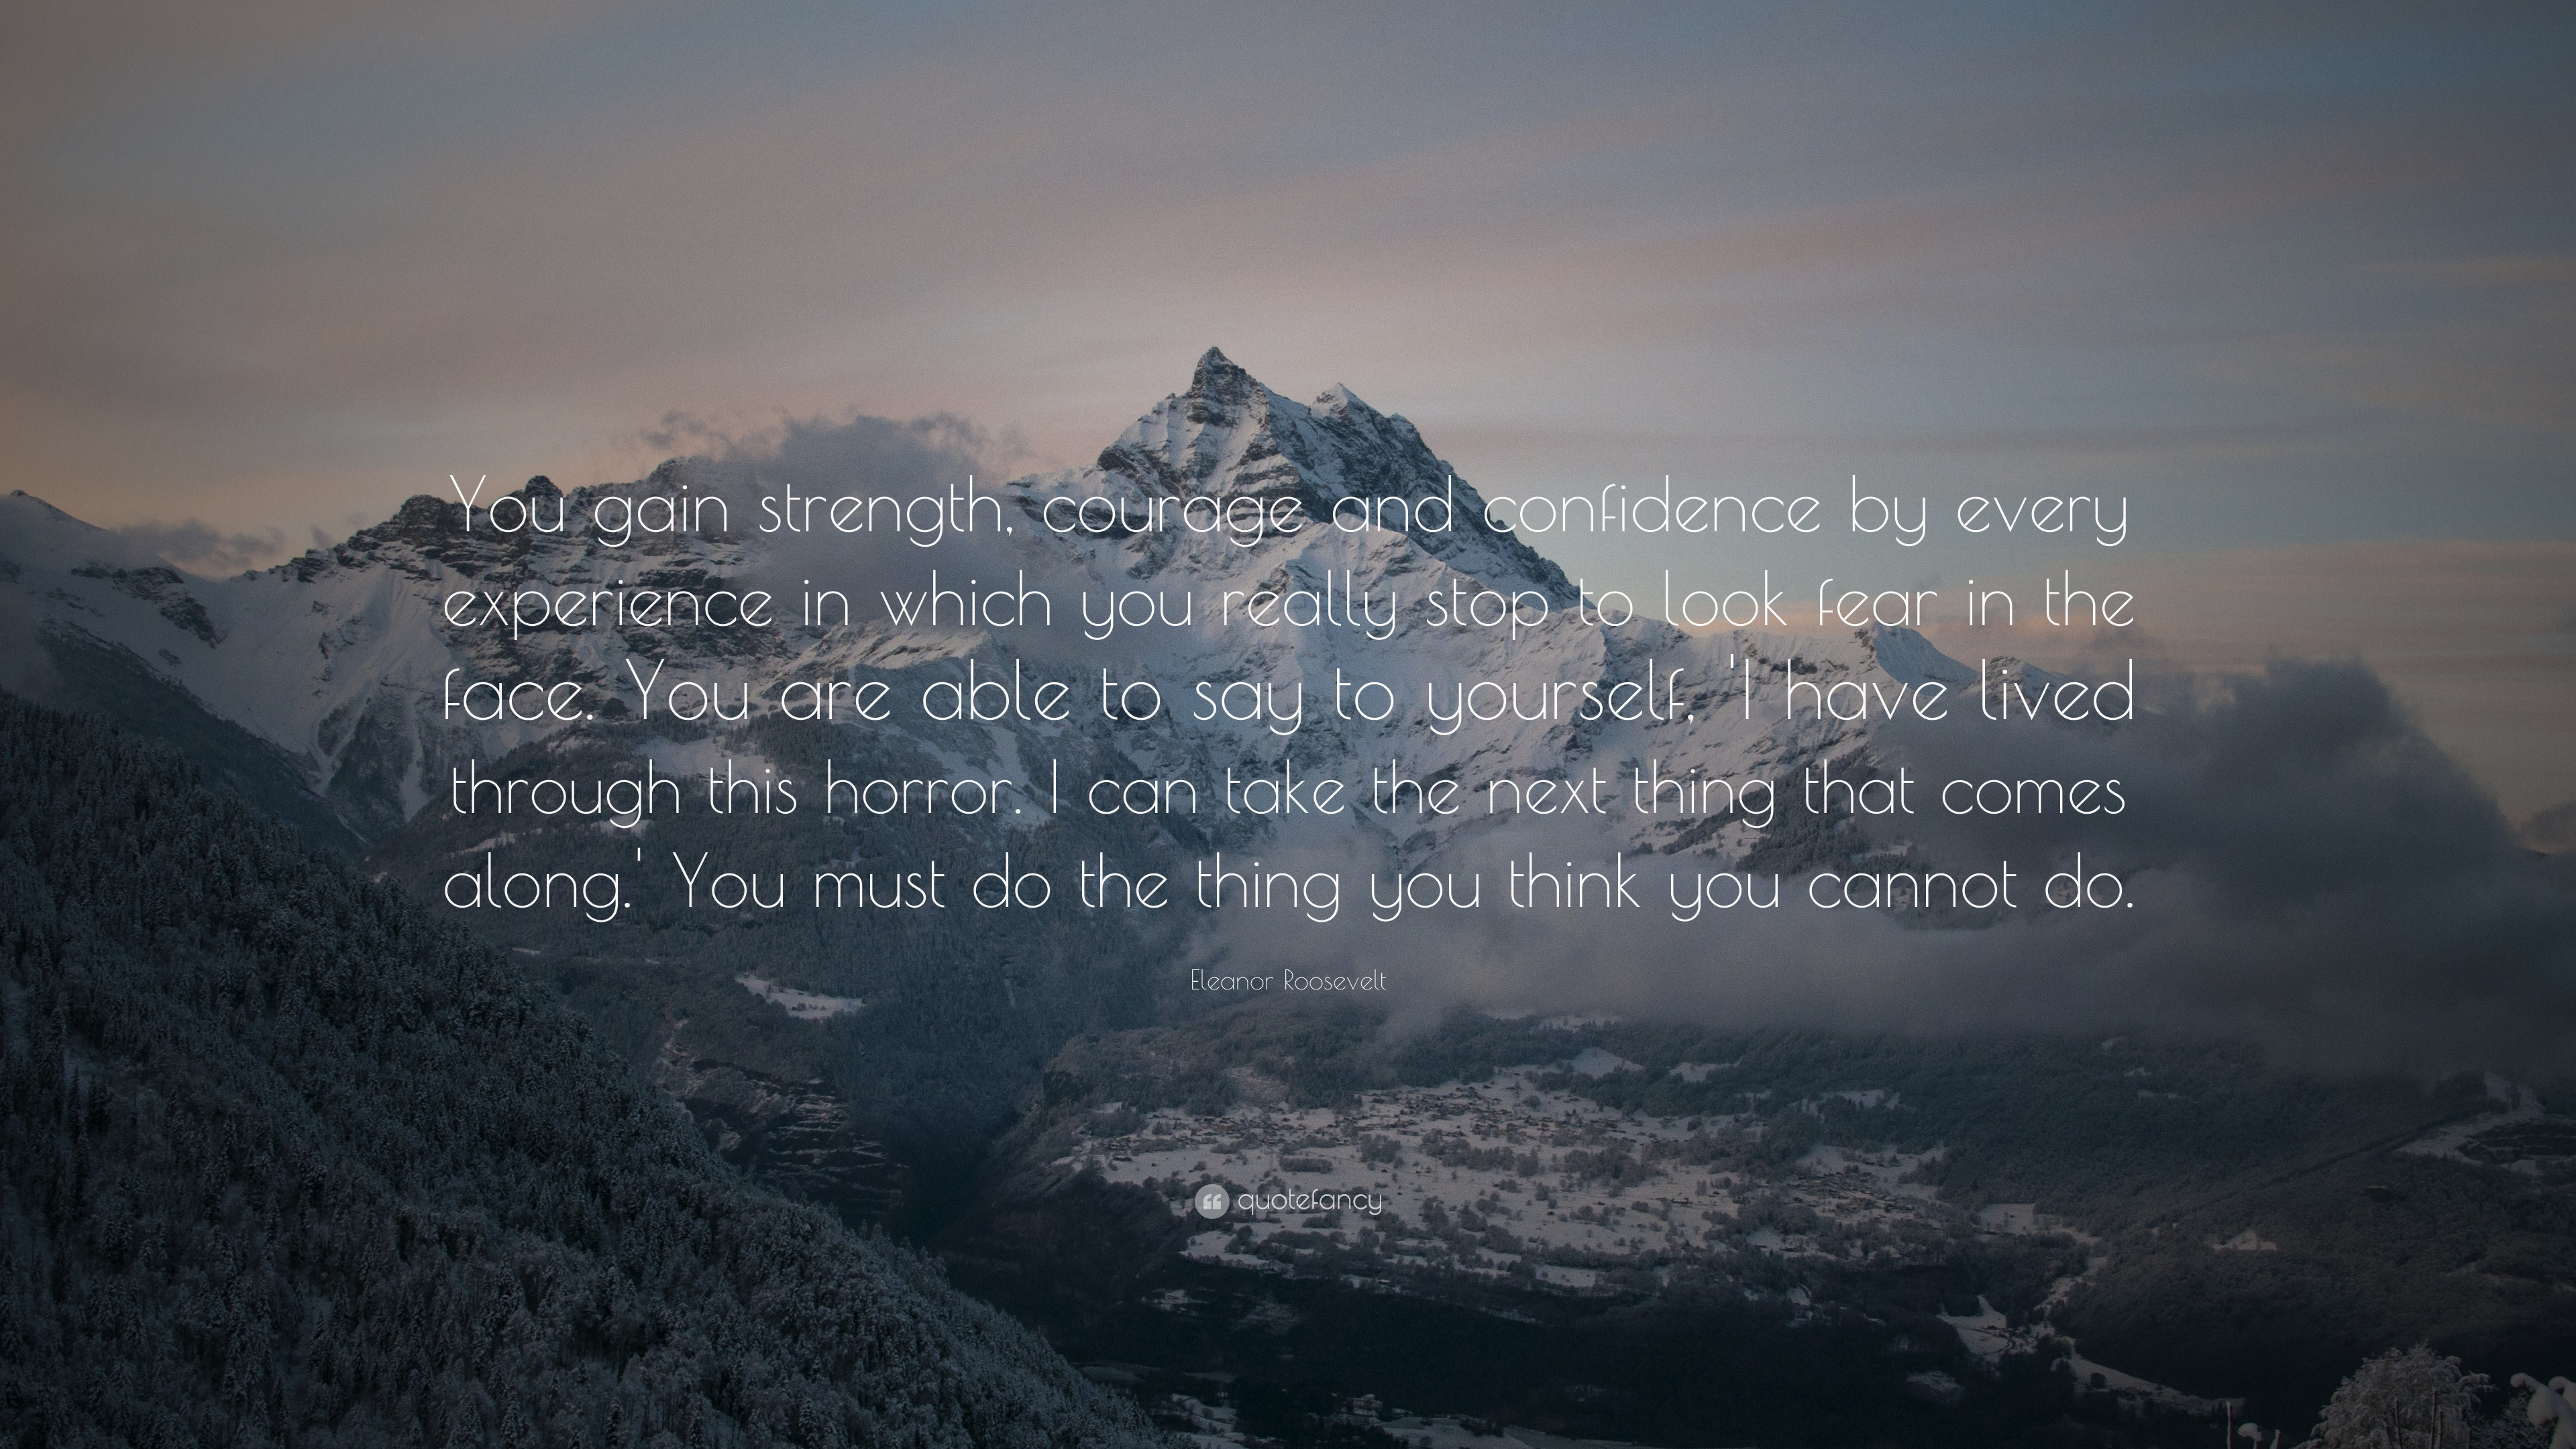 quotes about strength 23 quotefancy quotes about strength you gain strength courage and confidence by every experience in